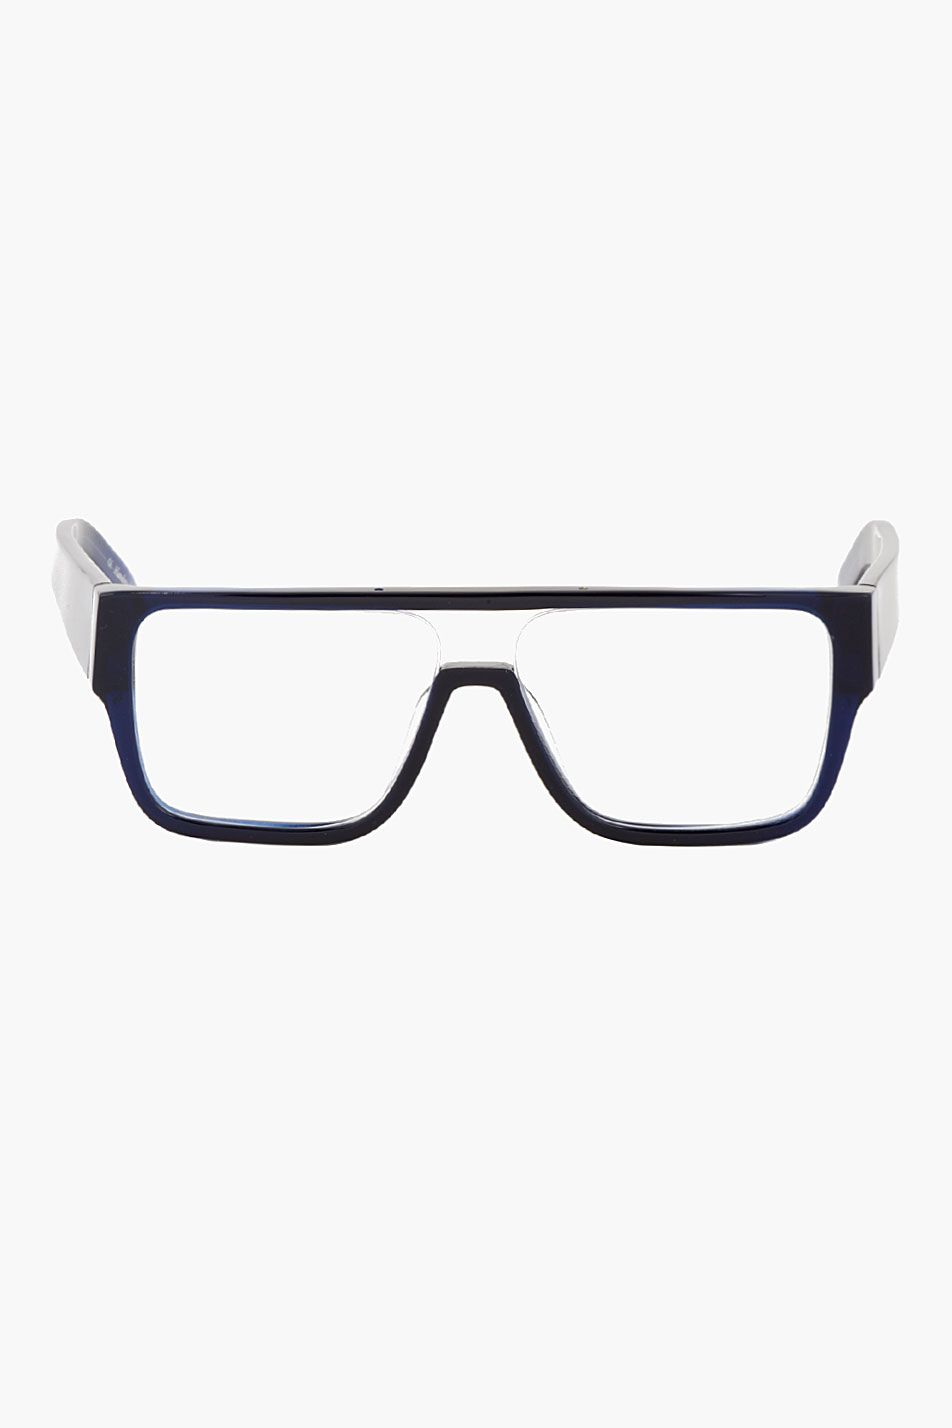 KSUBI Deep Navy Alkes Glasses | Lunettes | Pinterest | Brille